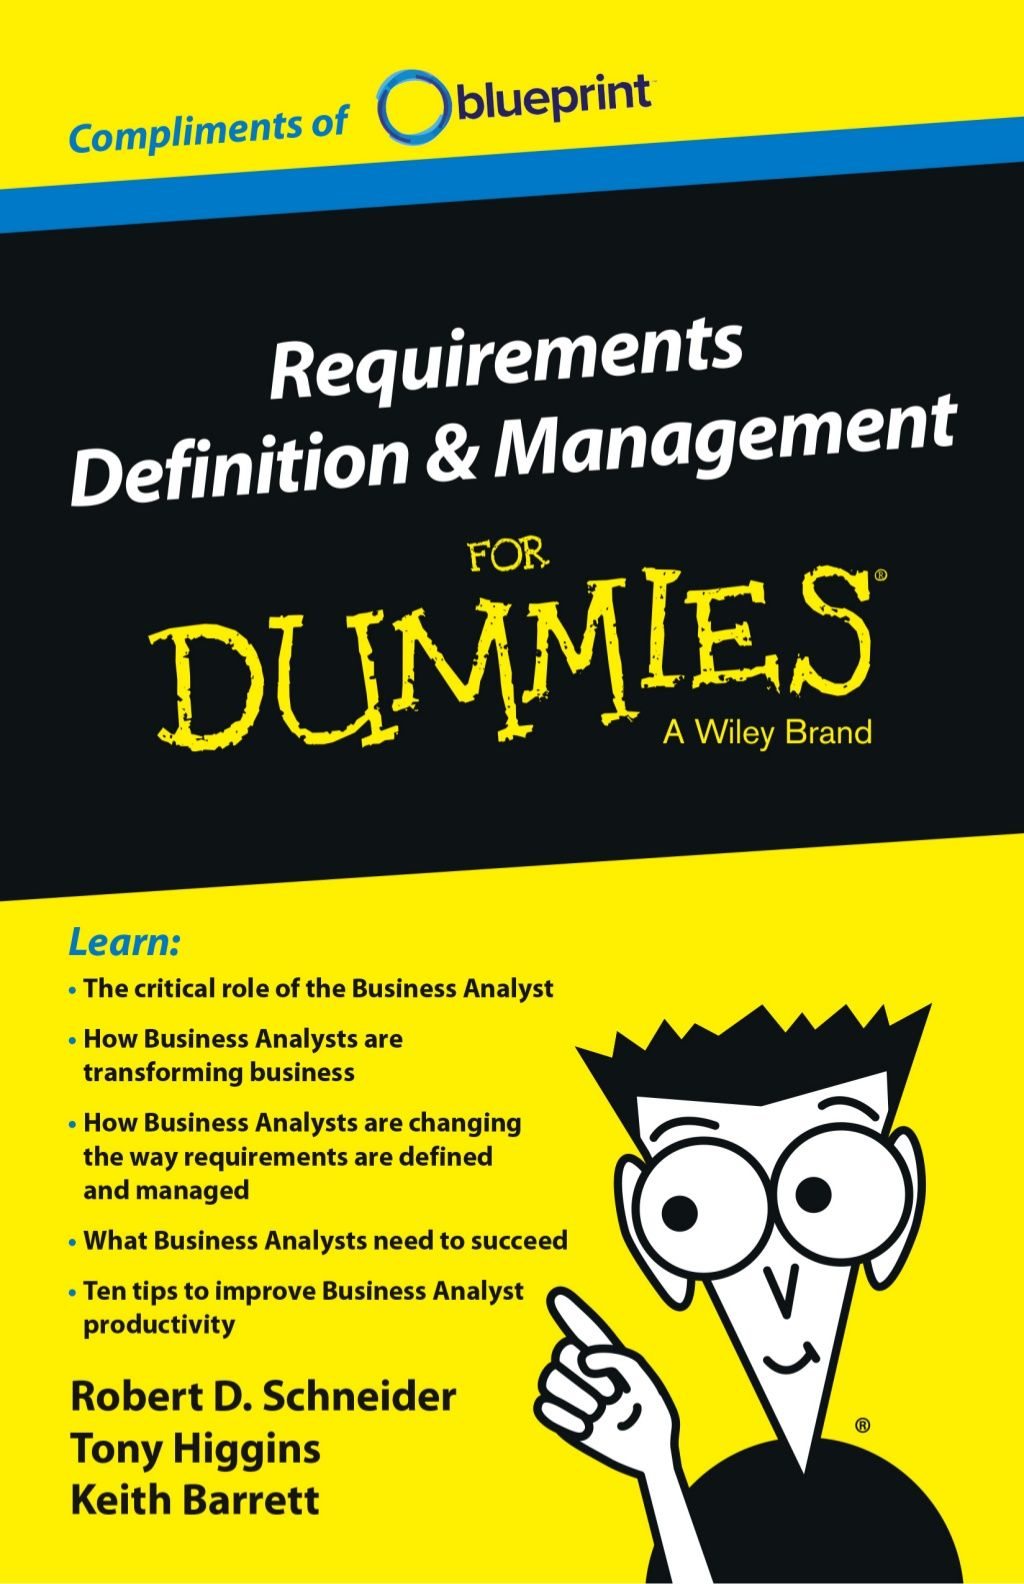 Requirements Definition and Management for Dummies by